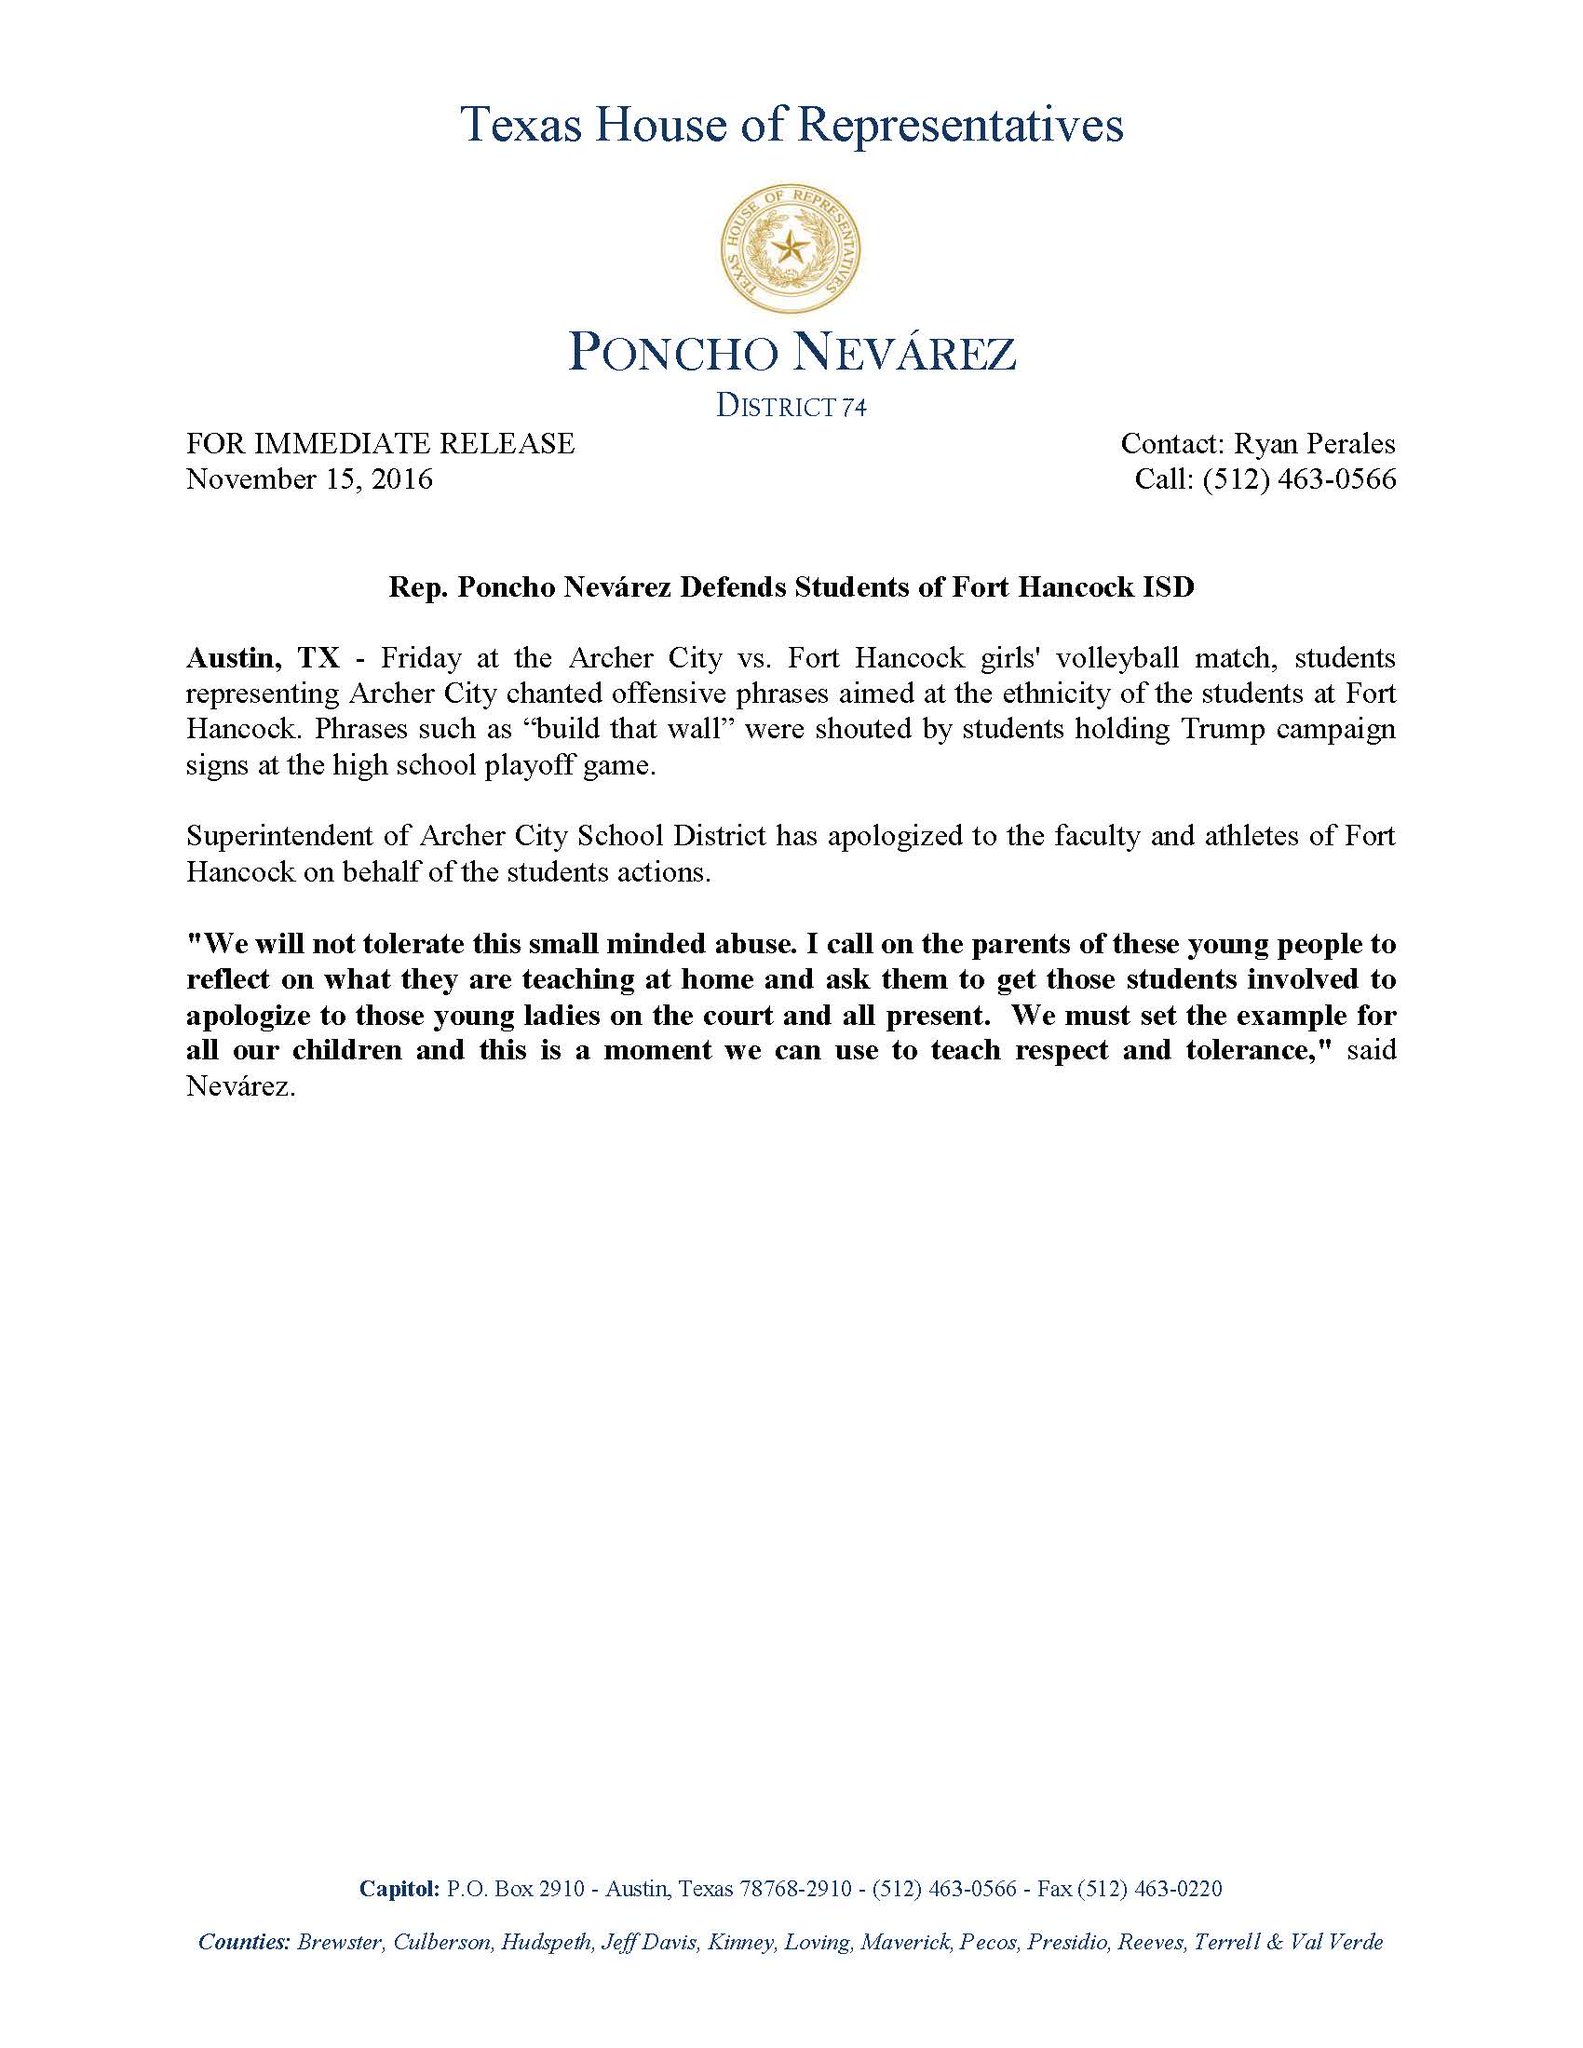 Statement regarding treatment of Fort Hancock students during playoff volleyball game #HD74 #txlege https://t.co/8GBADpuP3p